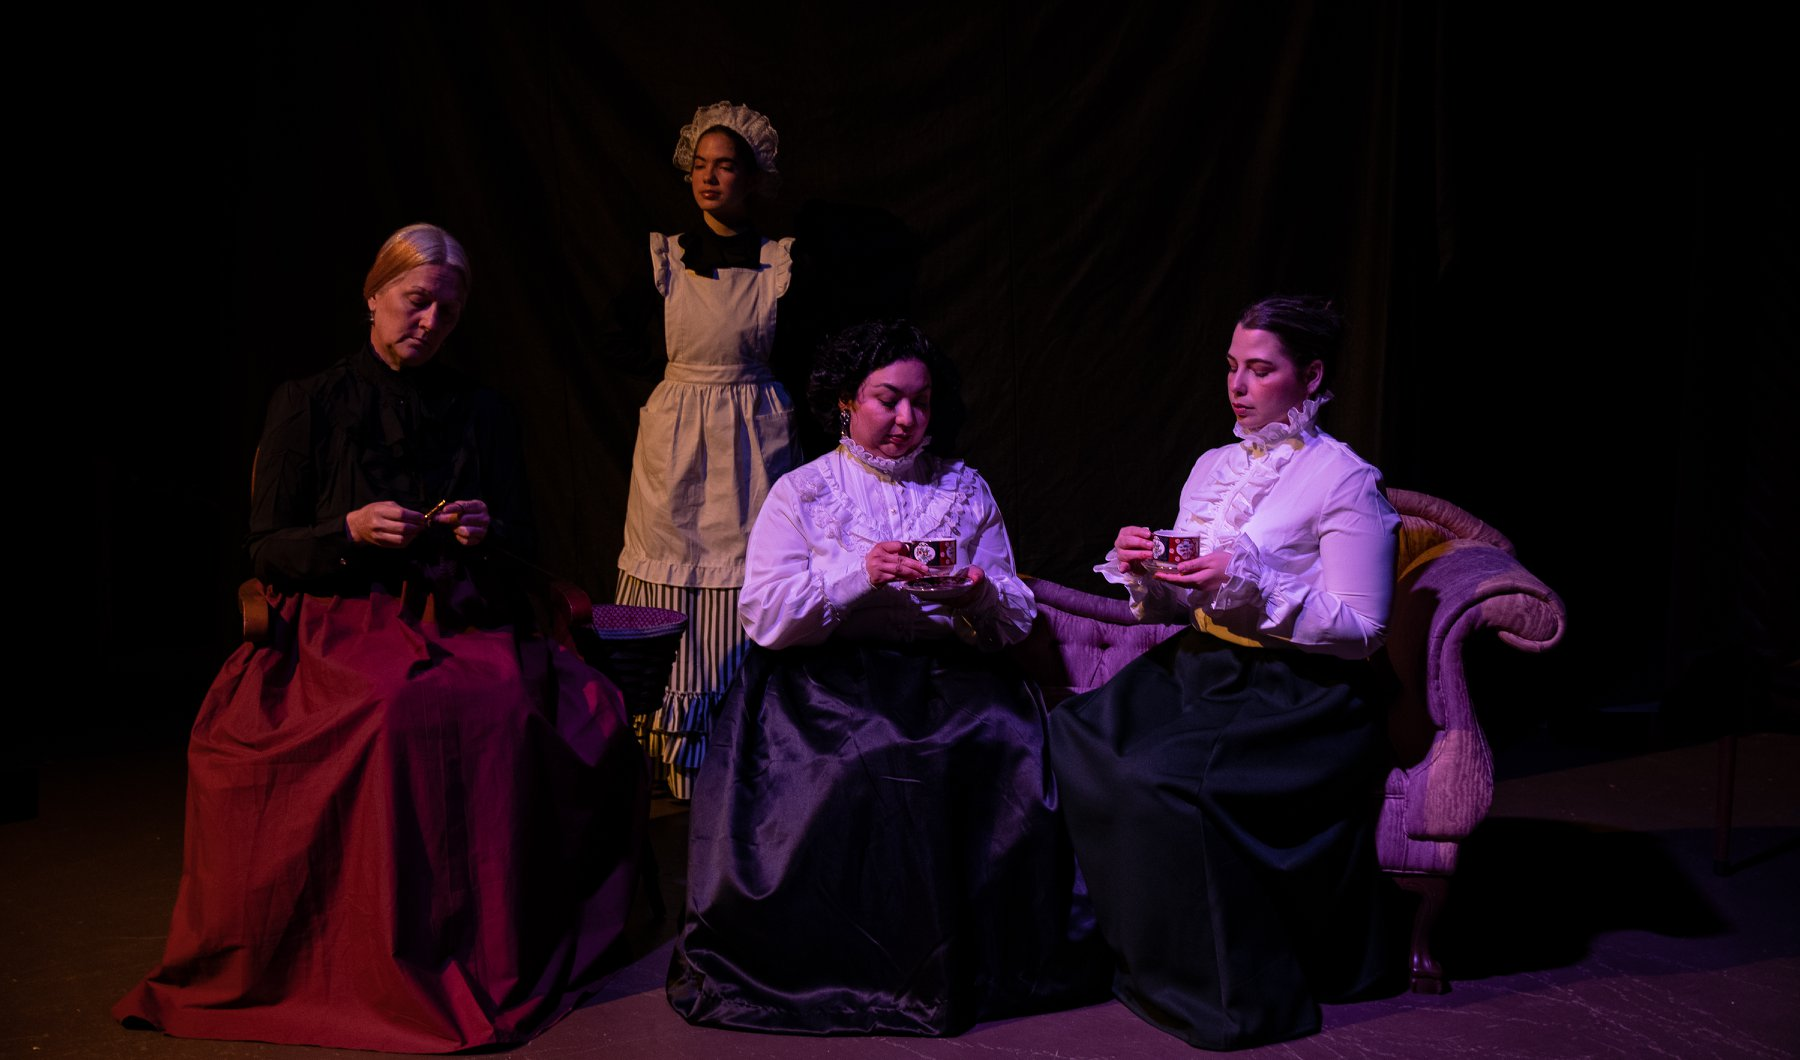 uploads/production_images/the-moors-gaslight-baker-ursula-rogers-2019/moors_gbt_04_four.jpg